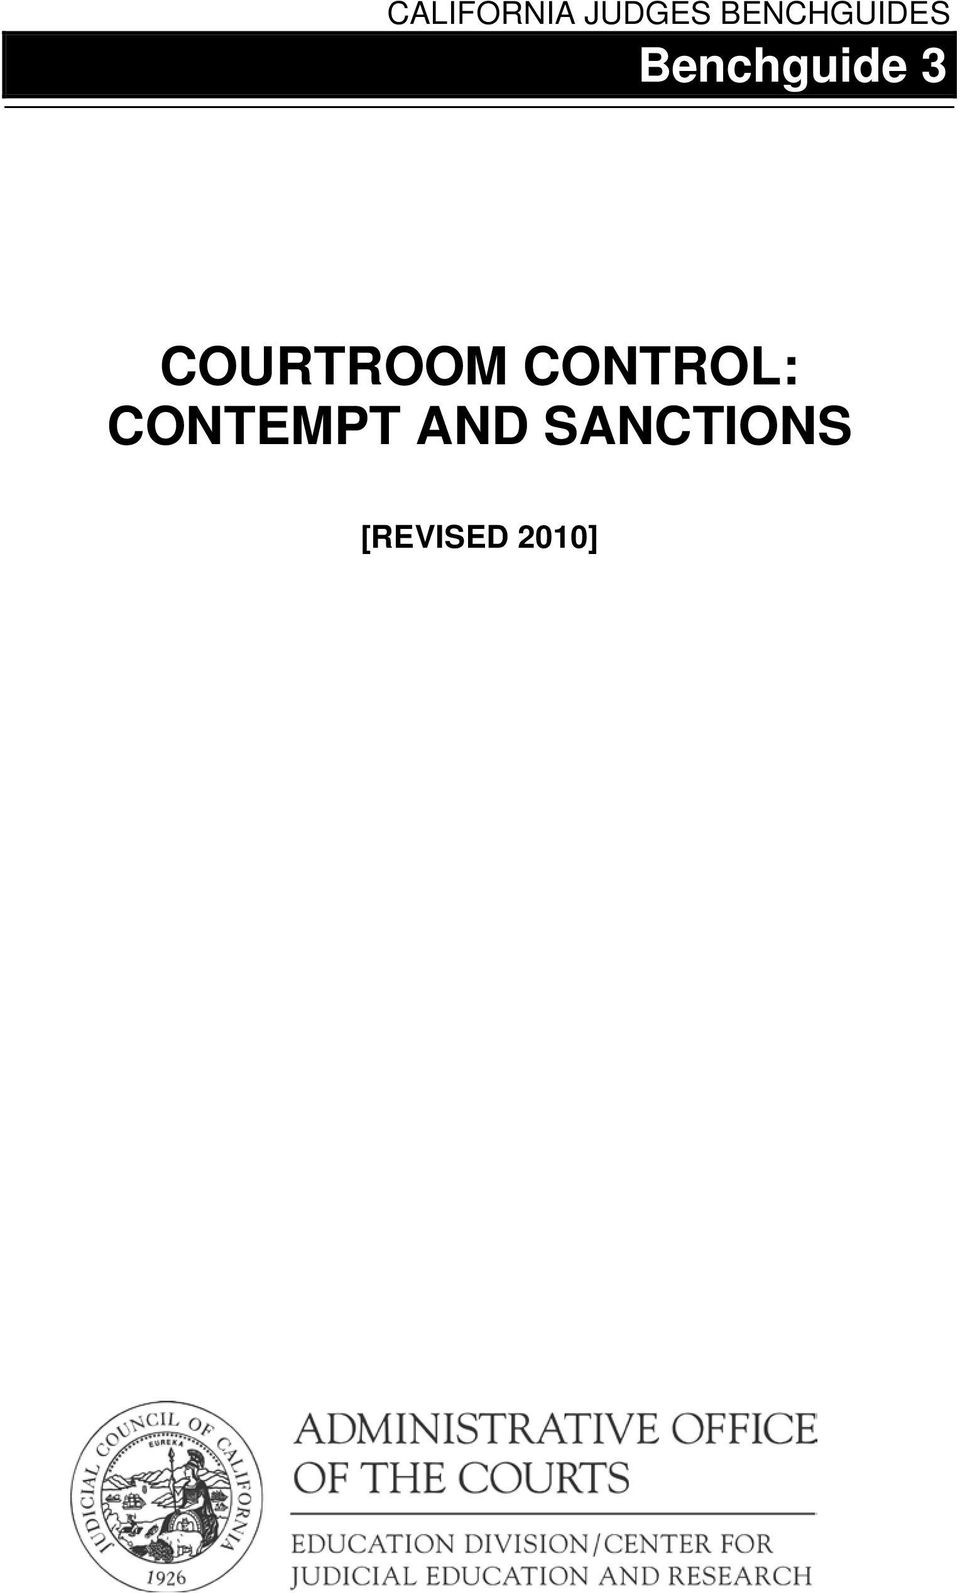 COURTROOM CONTROL: